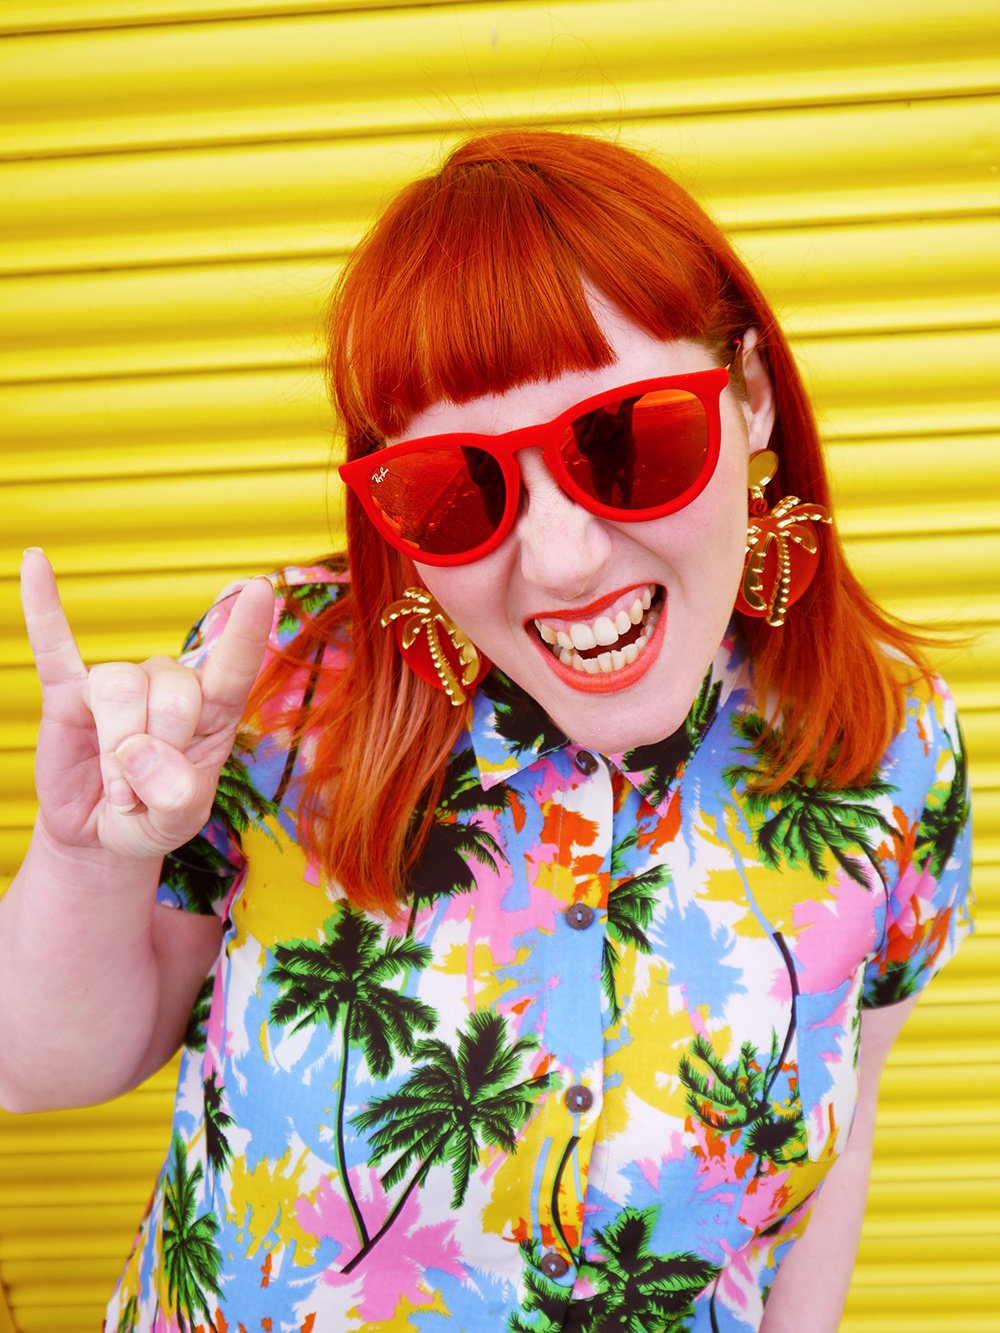 Lou Taylor, tropical style, palm tree earrings, hula style, hawaiian shirt, ginger hair, giveaway, jewellery giveaway, win, sunglasses, holiday style